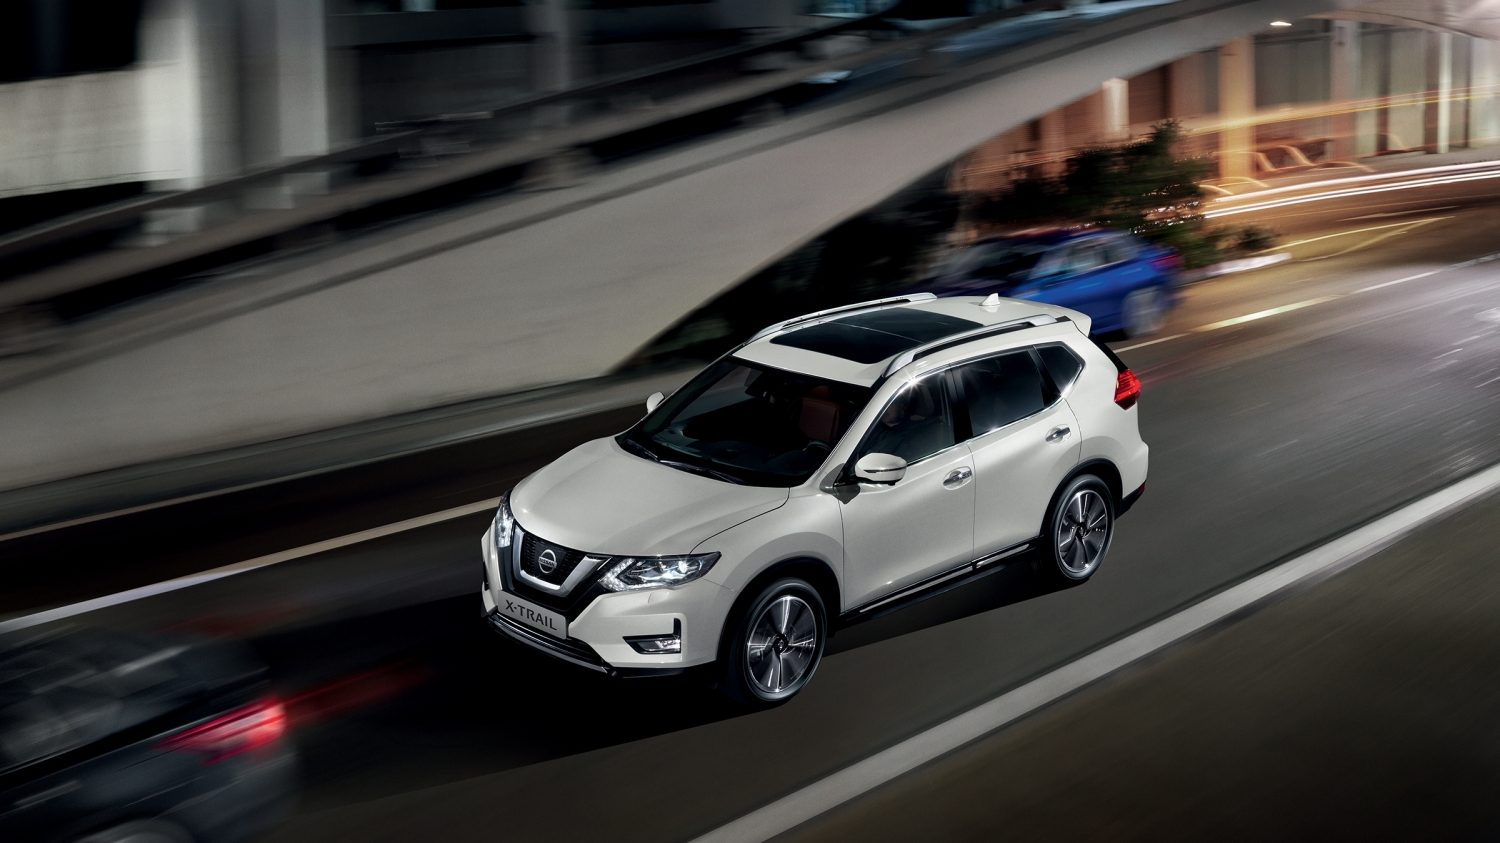 nissan x trail 2017 4x4 suv 7 places nissan. Black Bedroom Furniture Sets. Home Design Ideas